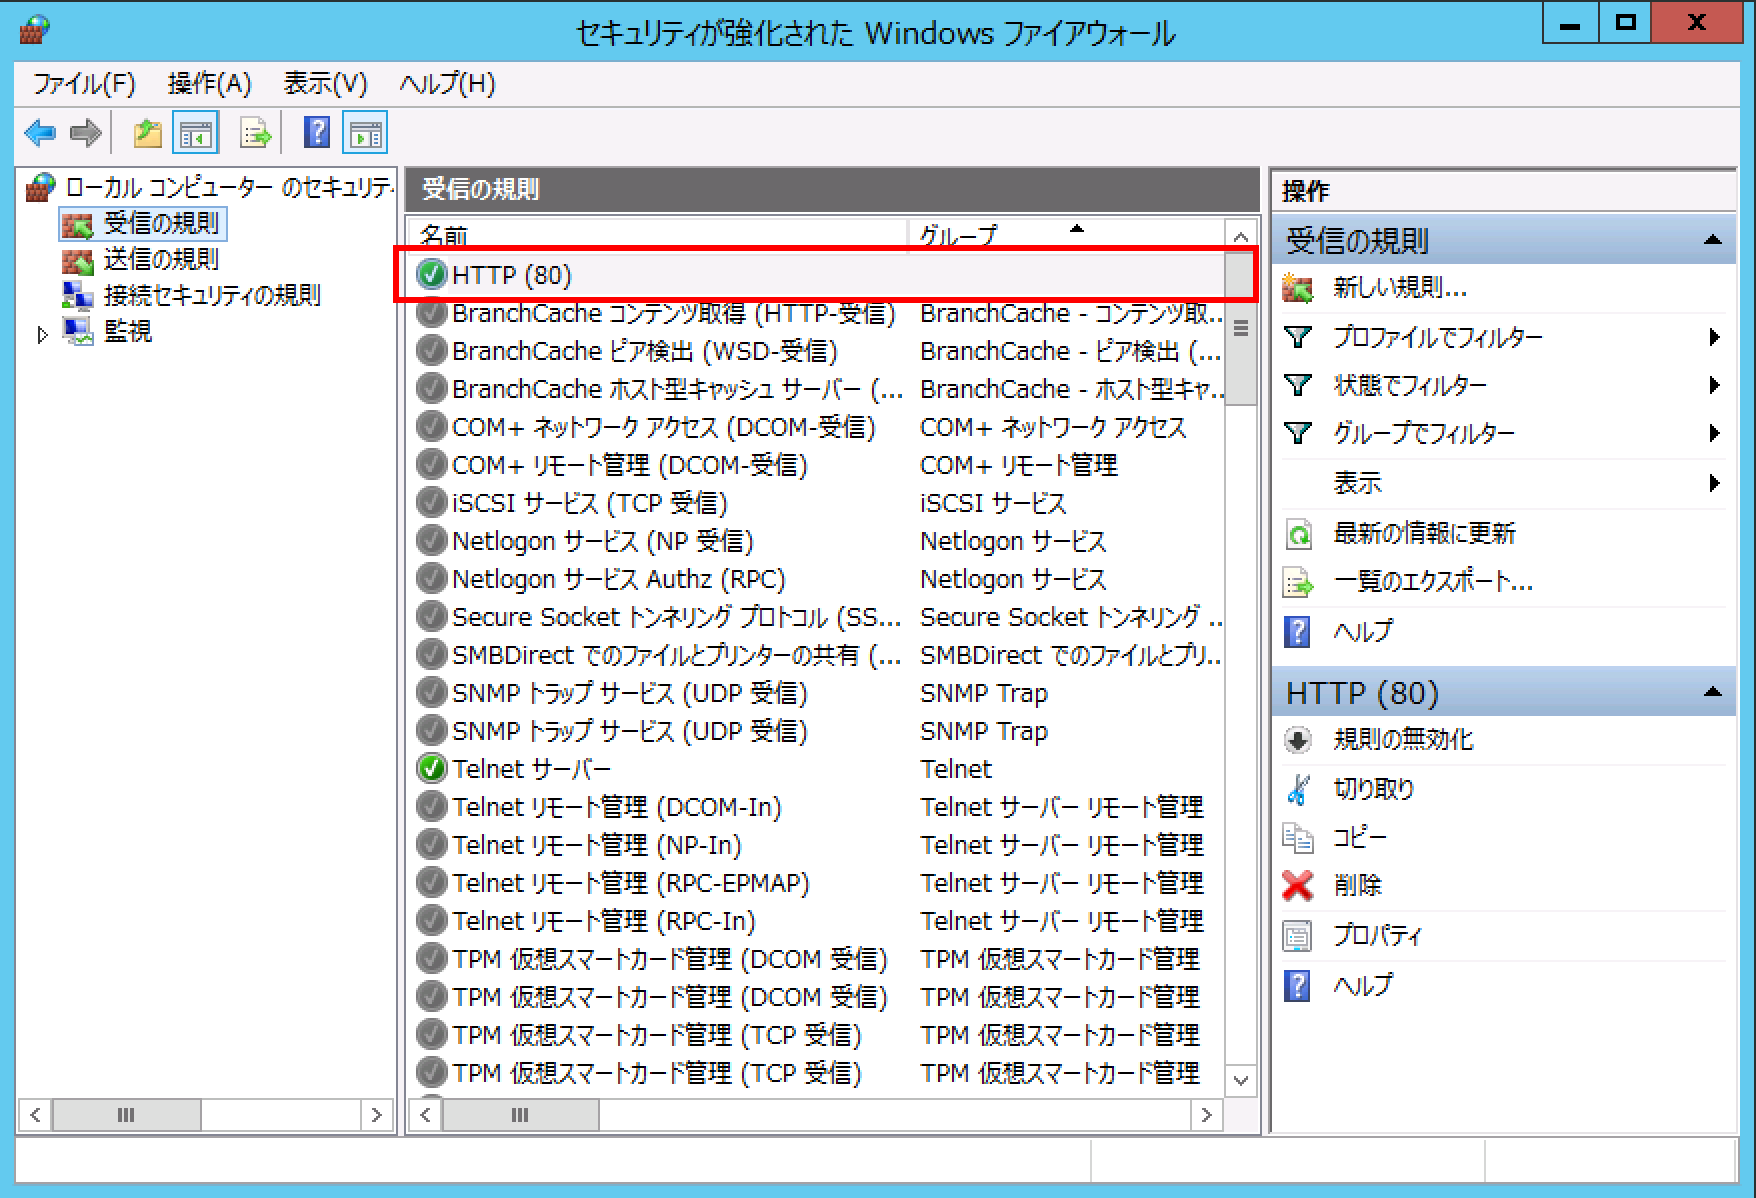 WindowsFirewall_NewRuleAdded